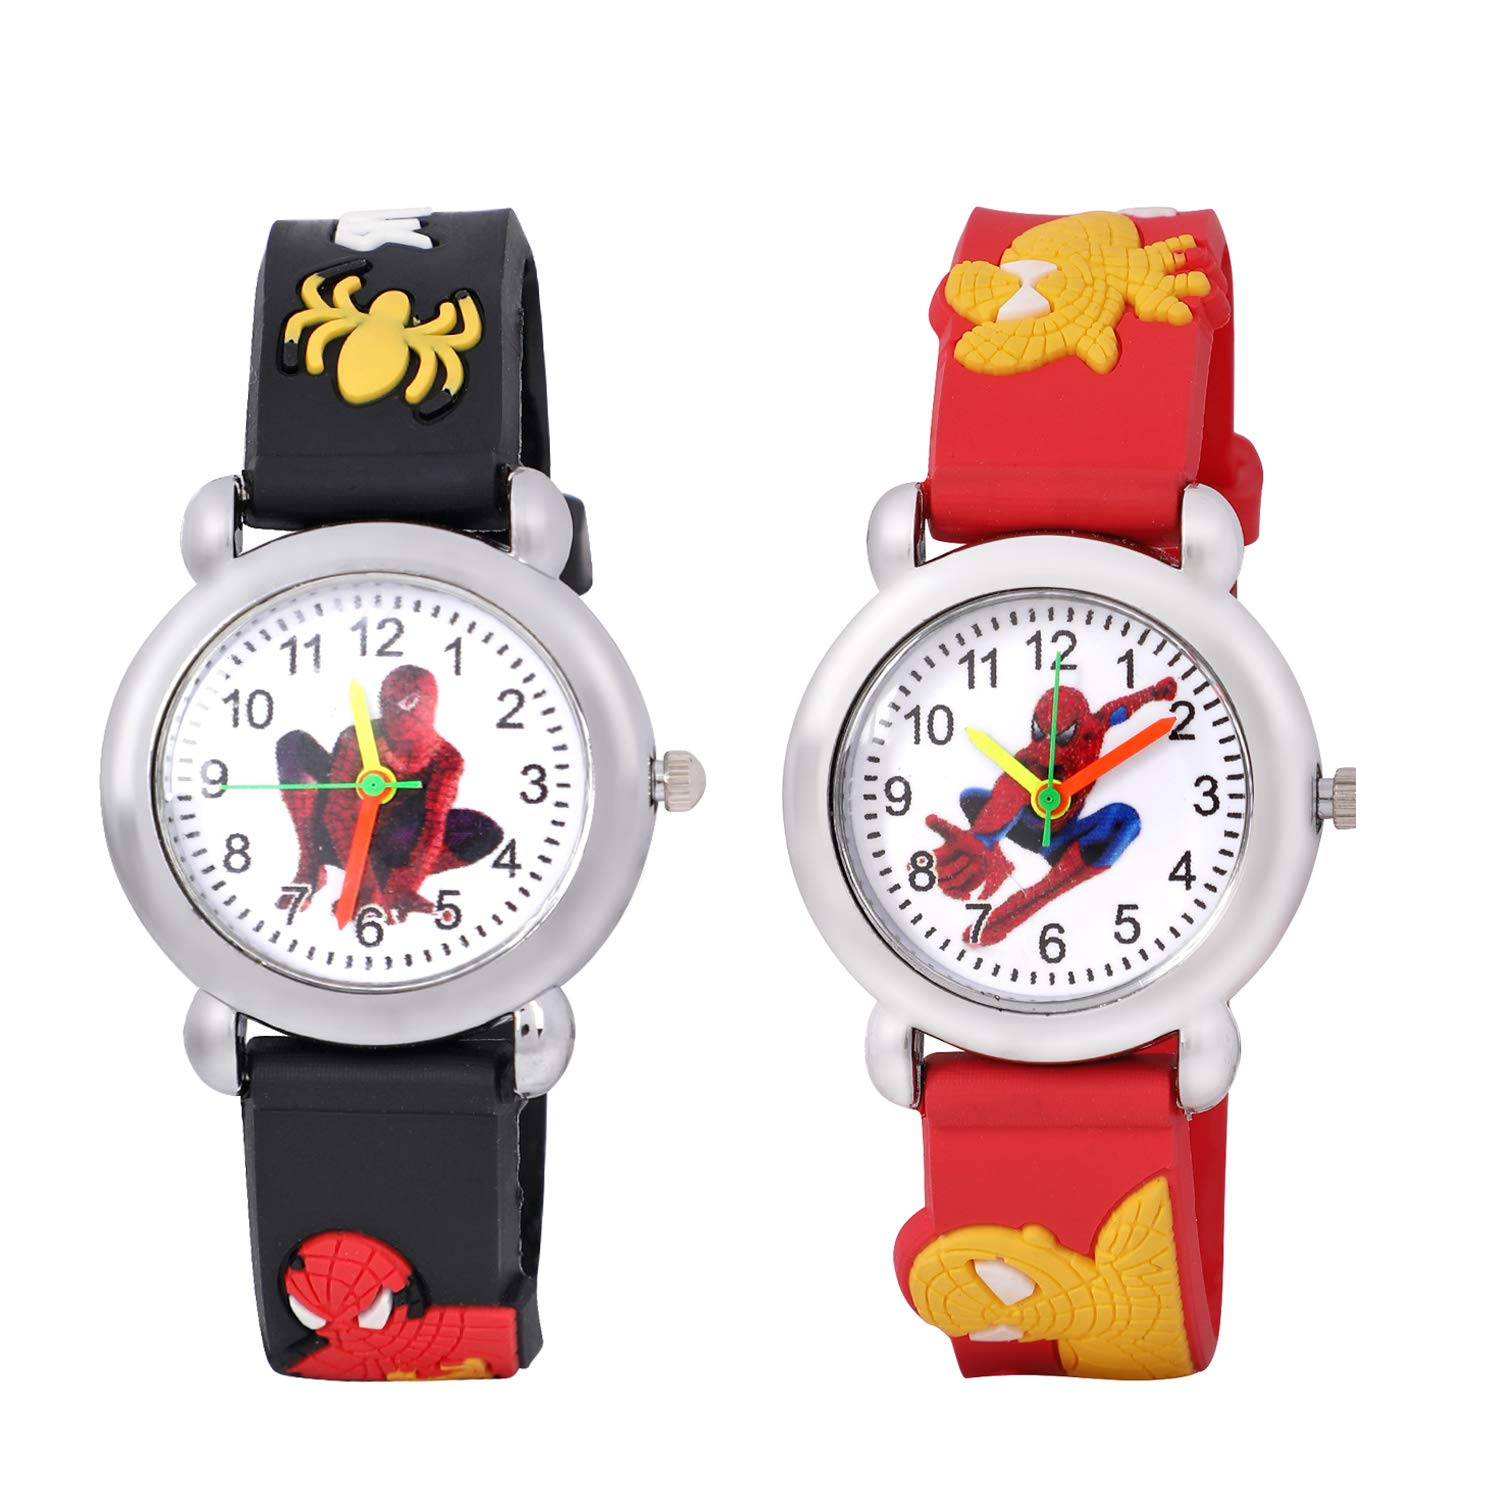 CLOUDWOOD Digital Boy's and Girl's Wrist Watch